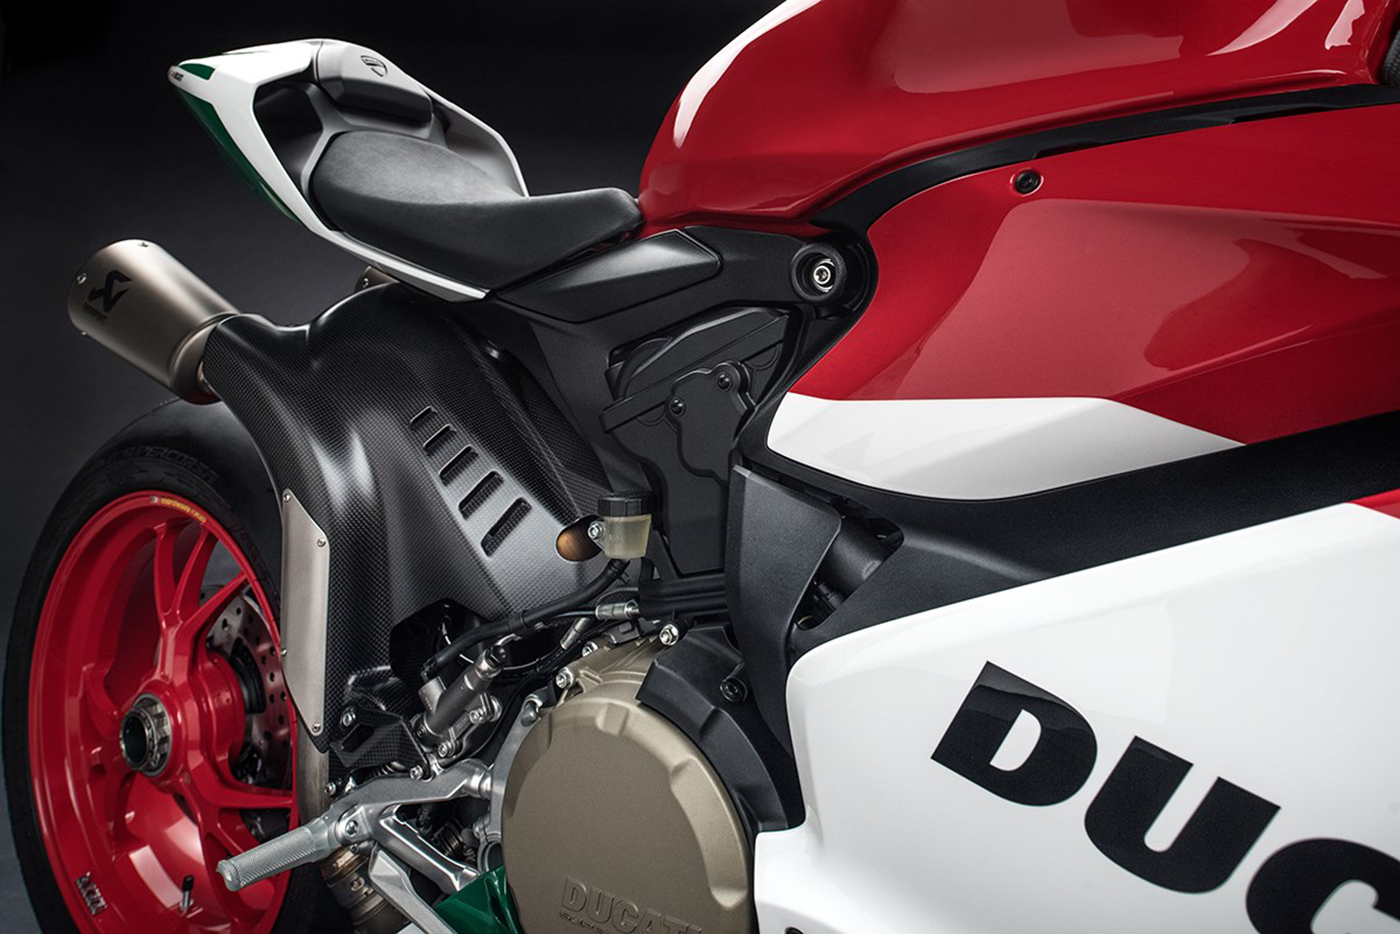 ducati-1299-panigale-r-final-edition-25.jpg